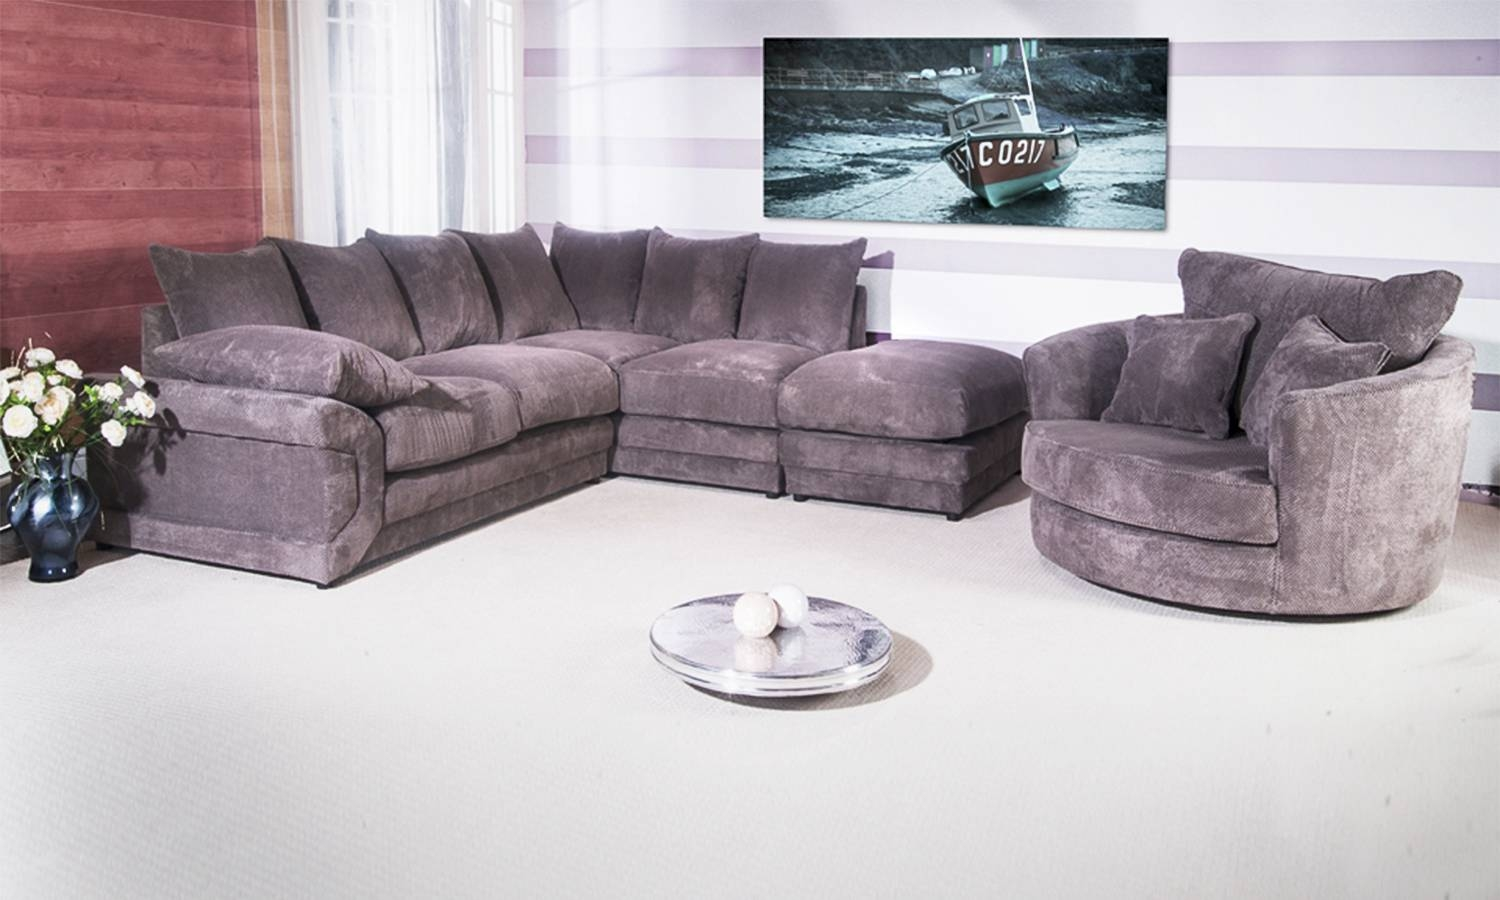 Corner Sofa And Chair Set | Tehranmix Decoration with regard to Sofa With Swivel Chair (Image 11 of 30)